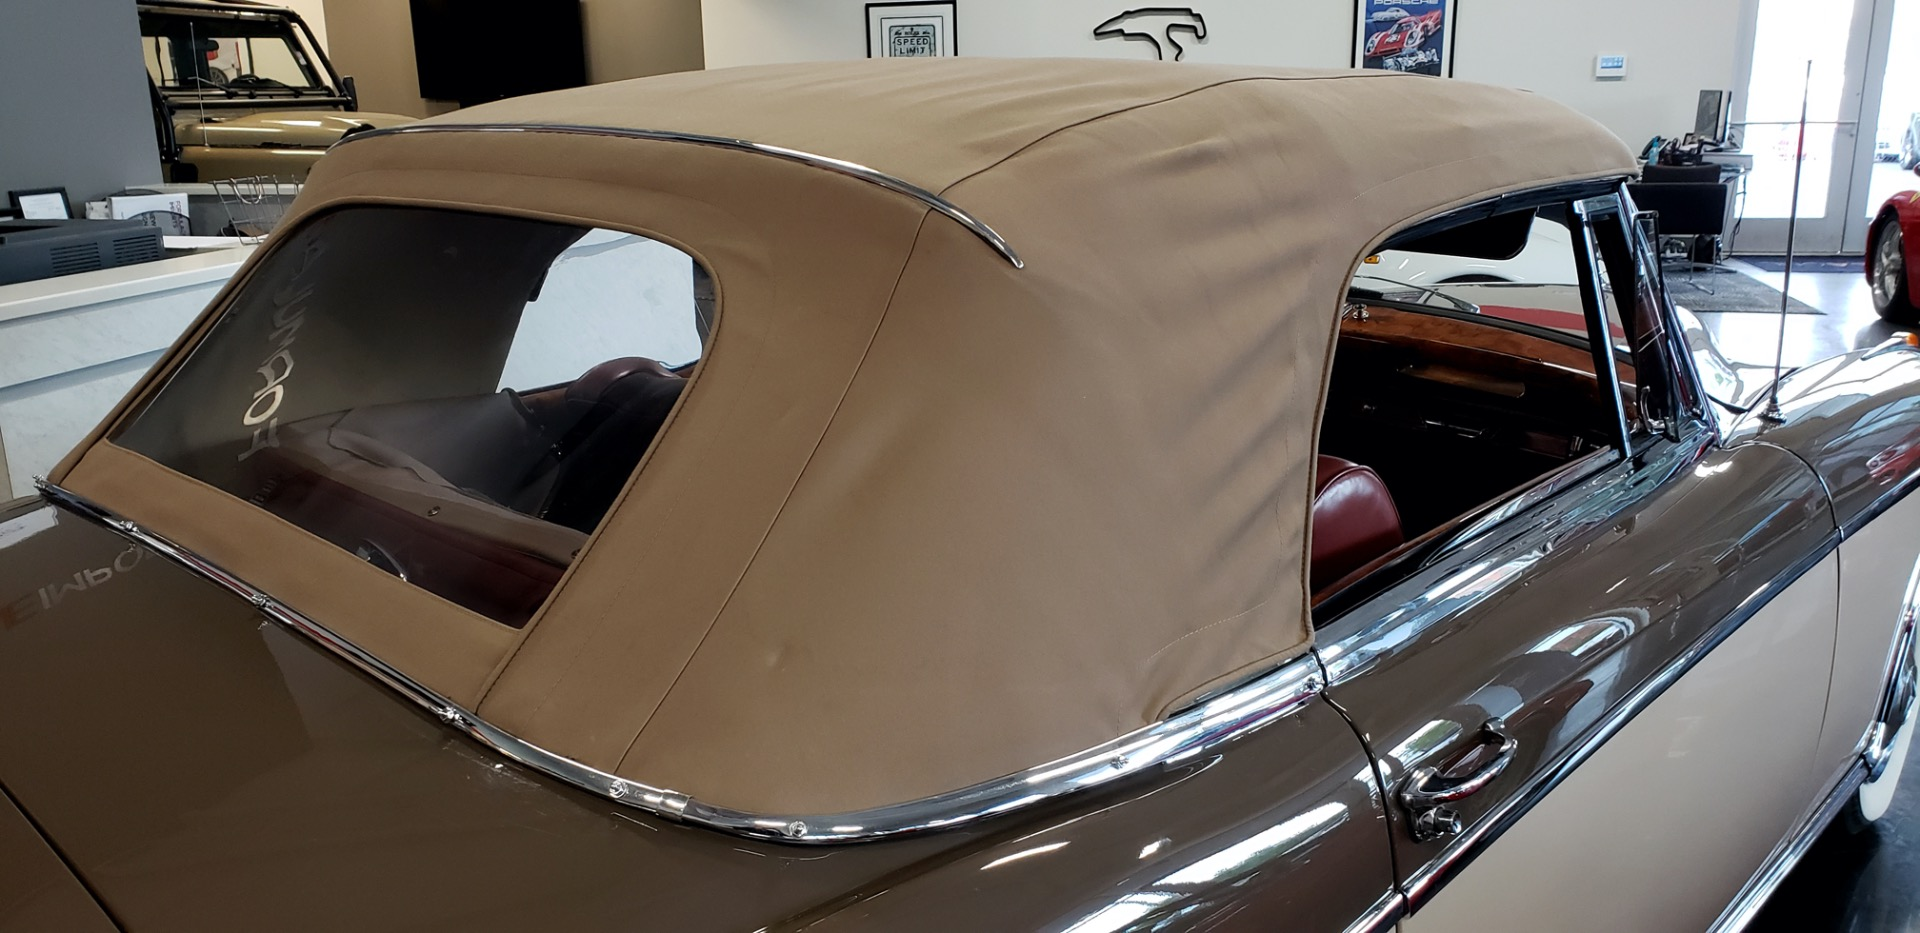 Used 1957 Mercedes-Benz 220 S Cabriolet - Full Restoration for sale Sold at Formula Imports in Charlotte NC 28227 14